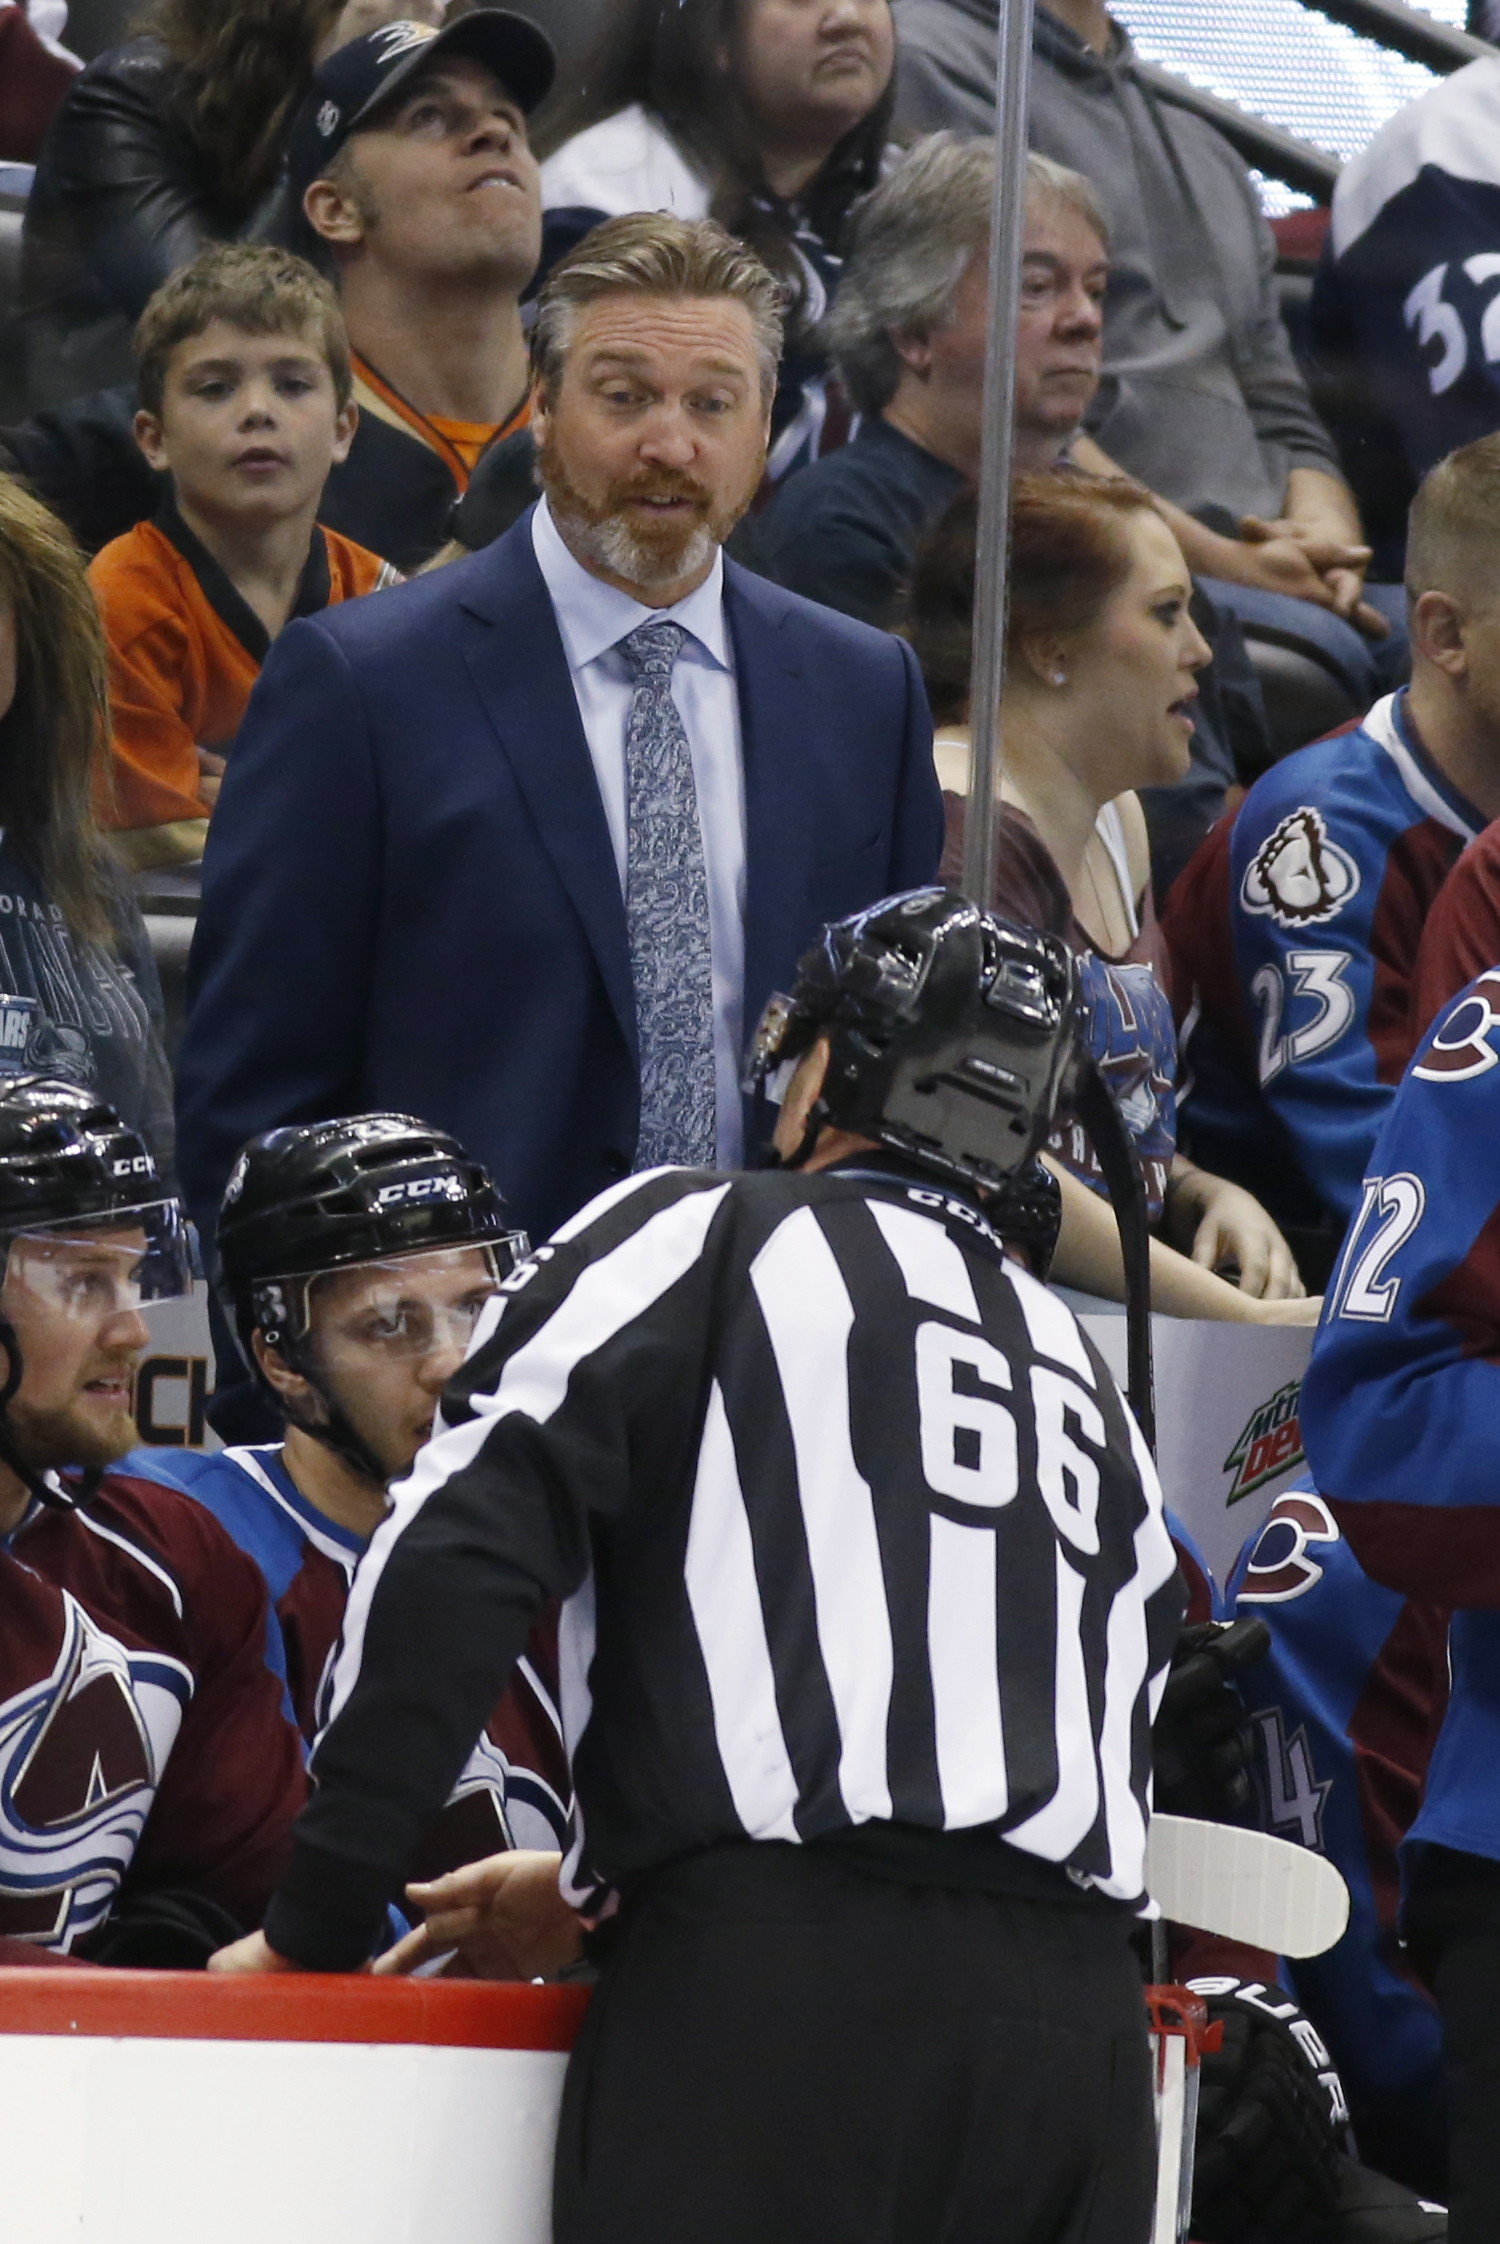 Colorado Avalanche head coach Patrick Roy, top, argues with linesman Darren Gibbs (66) while facing the Anaheim Ducks in the first period of an NHL hockey game Saturday, April 9, 2016, in Denver. (AP Photo/David Zalubowski)